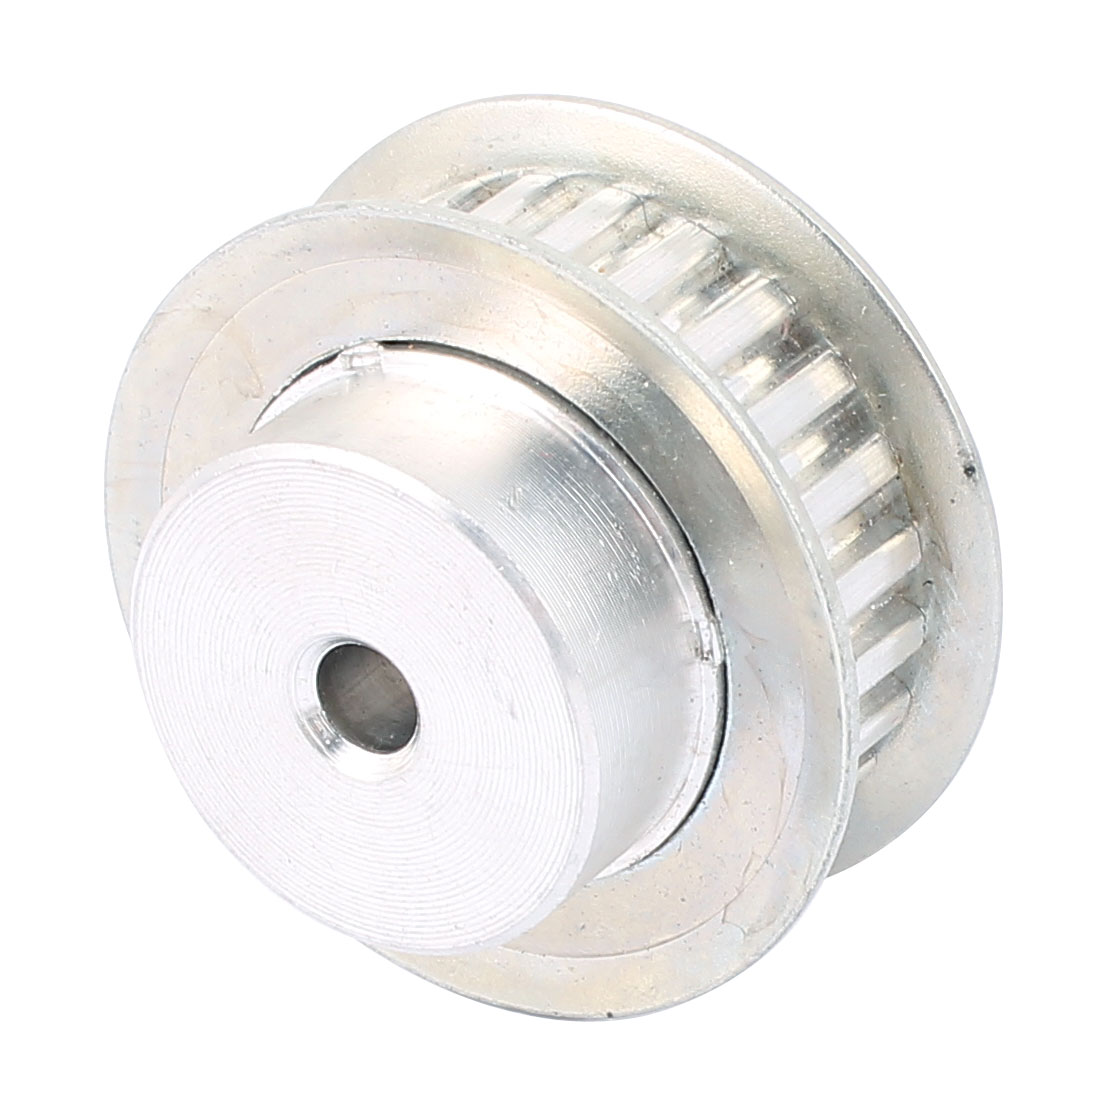 XL24 11mm Belt Width 6mm Bore 24 Teeth Synchronous Timing Pulley Silver Tone